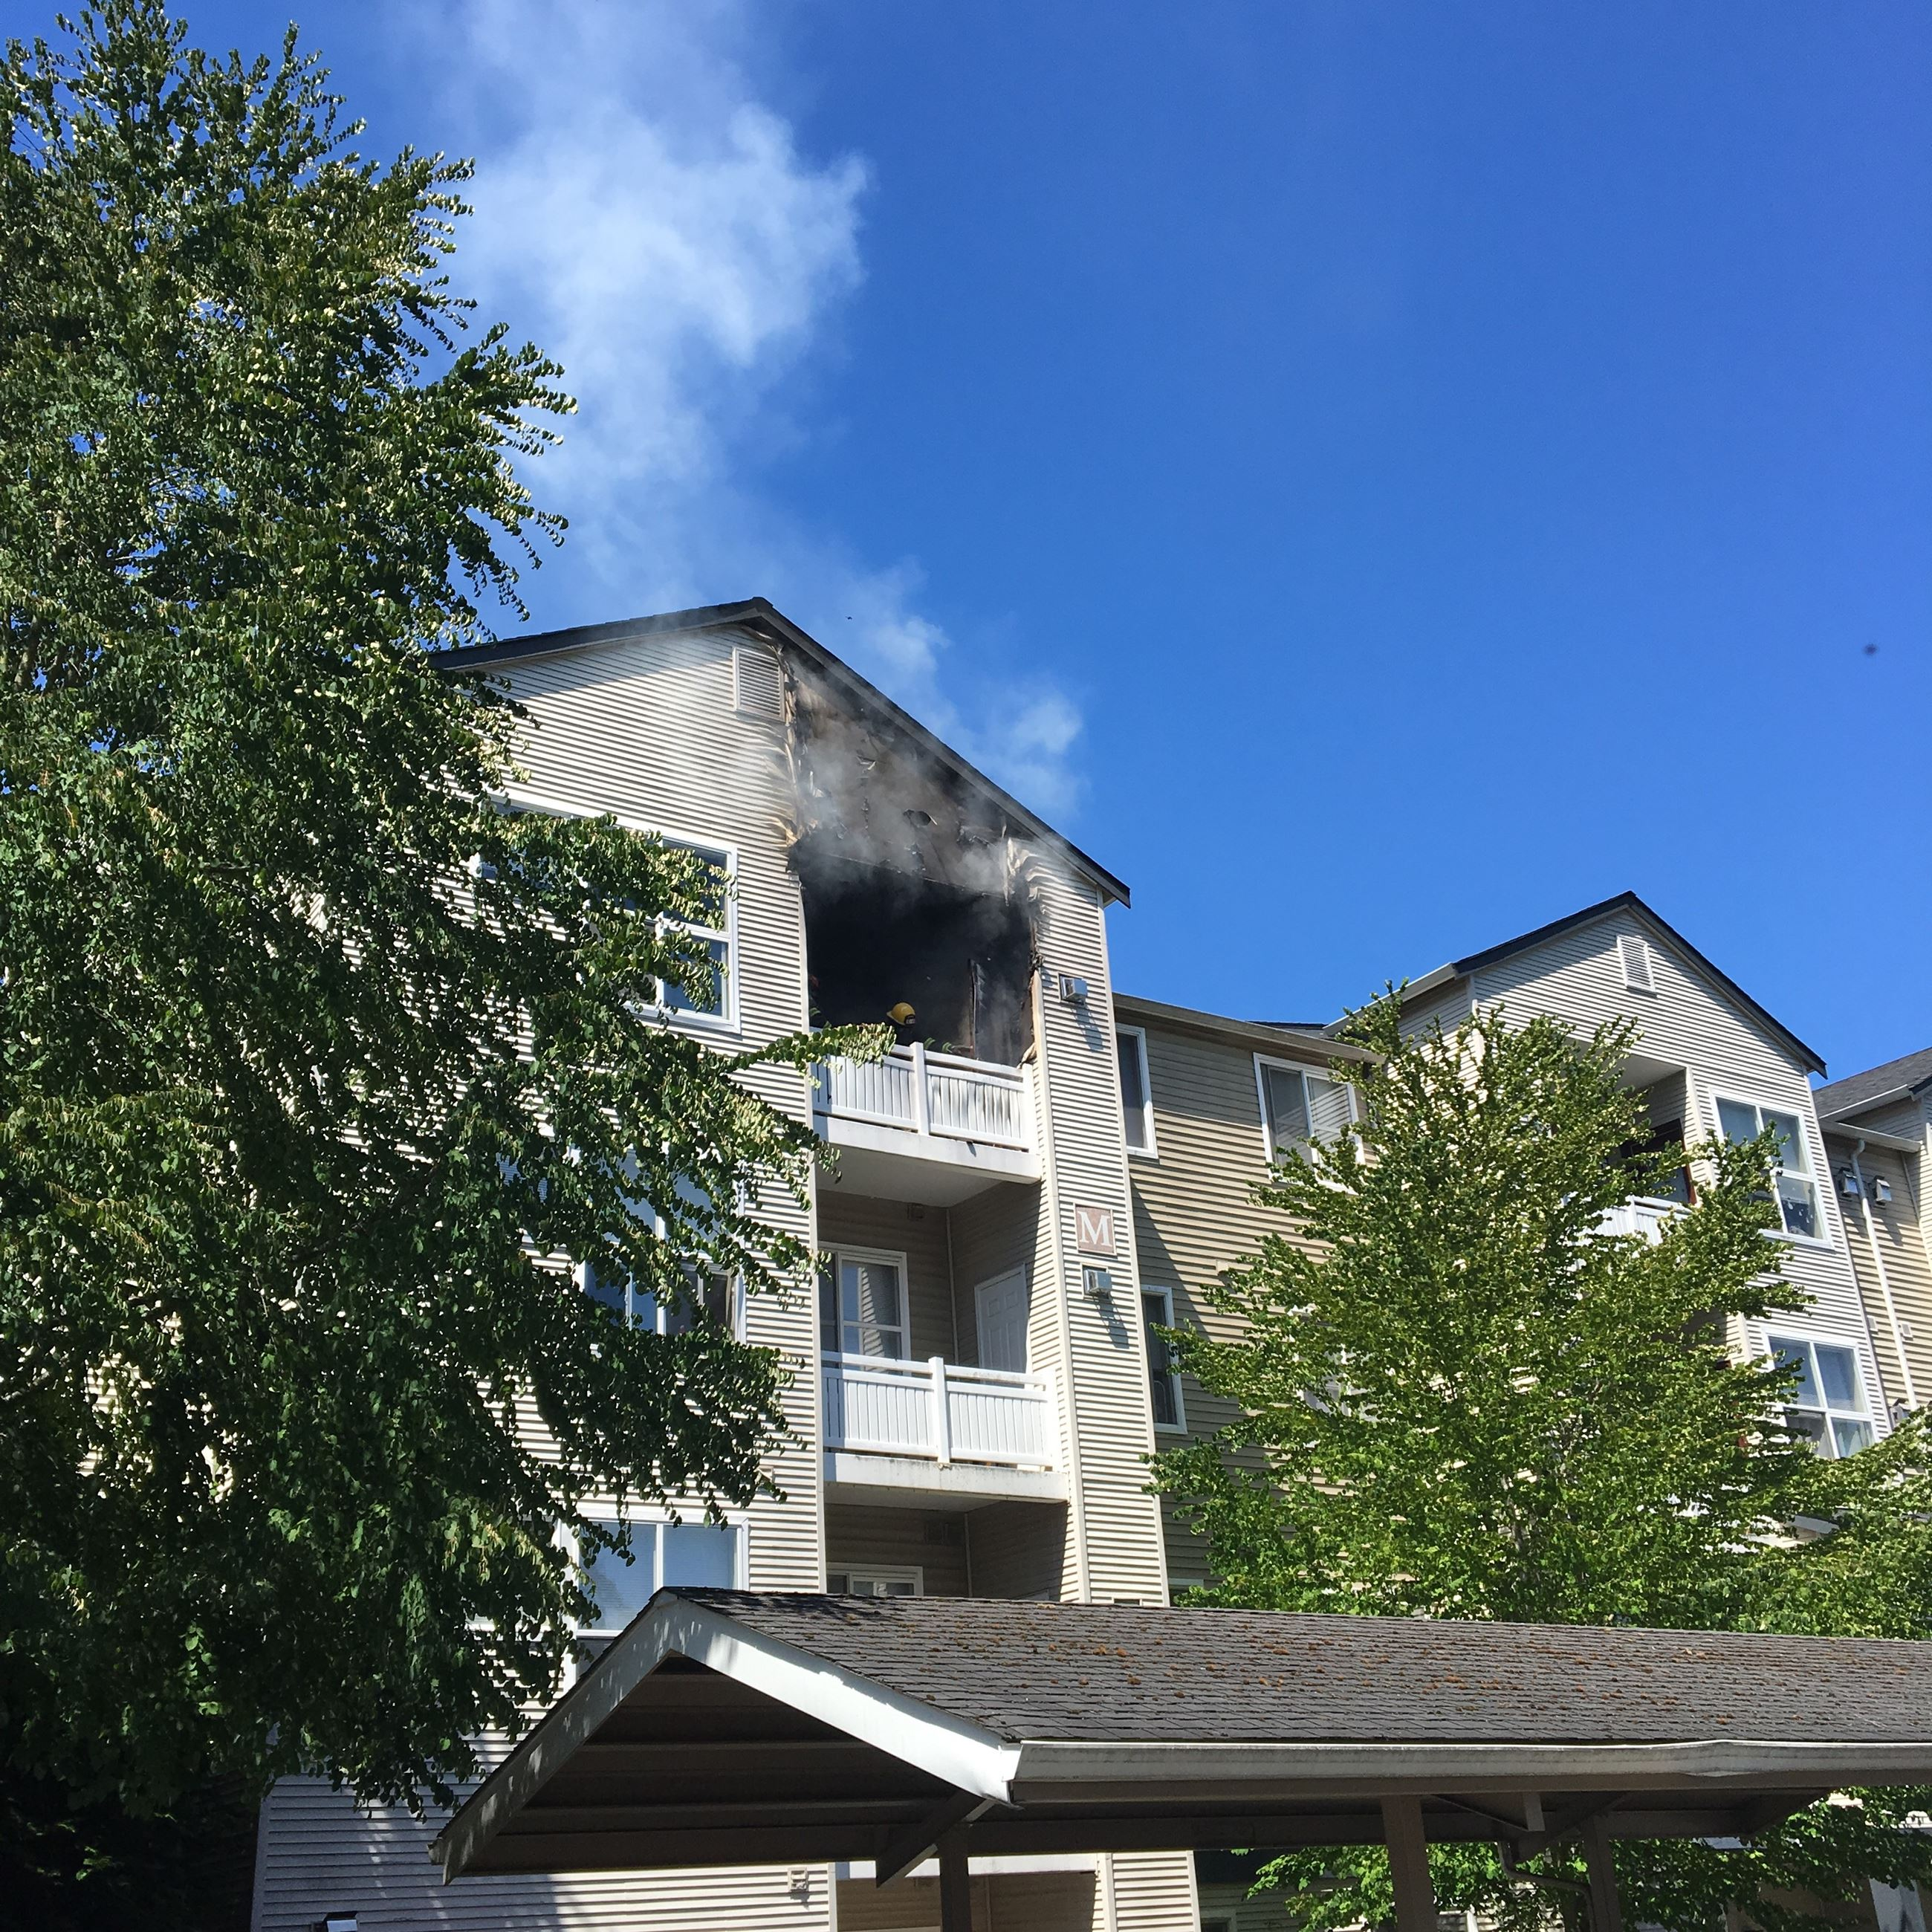 Discarded Cigarette Blamed For Apartment Fire